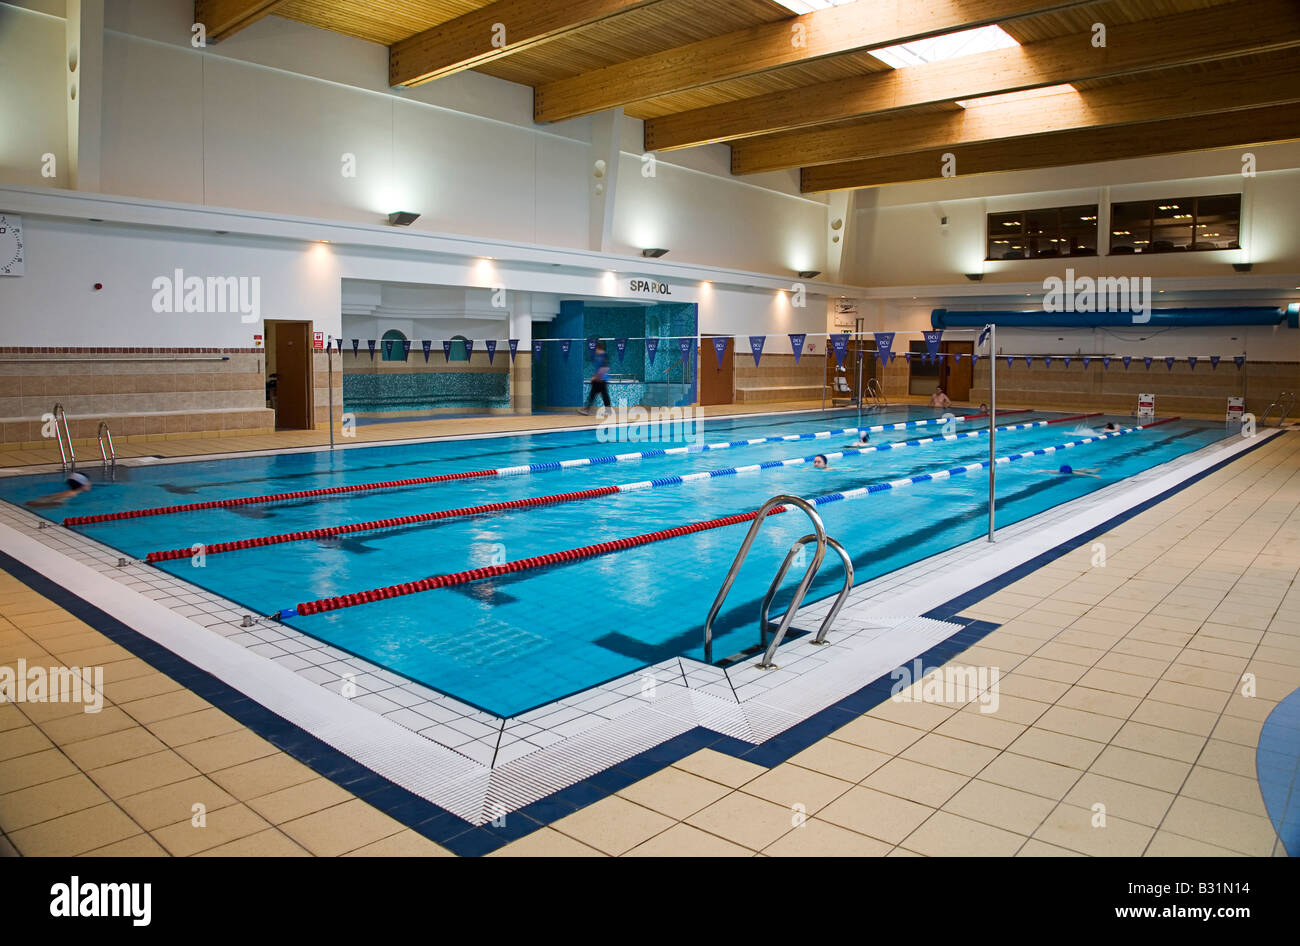 Dcu Sports Complex Swimming Pool Interior View Stock Photo Royalty Free Image 19092784 Alamy